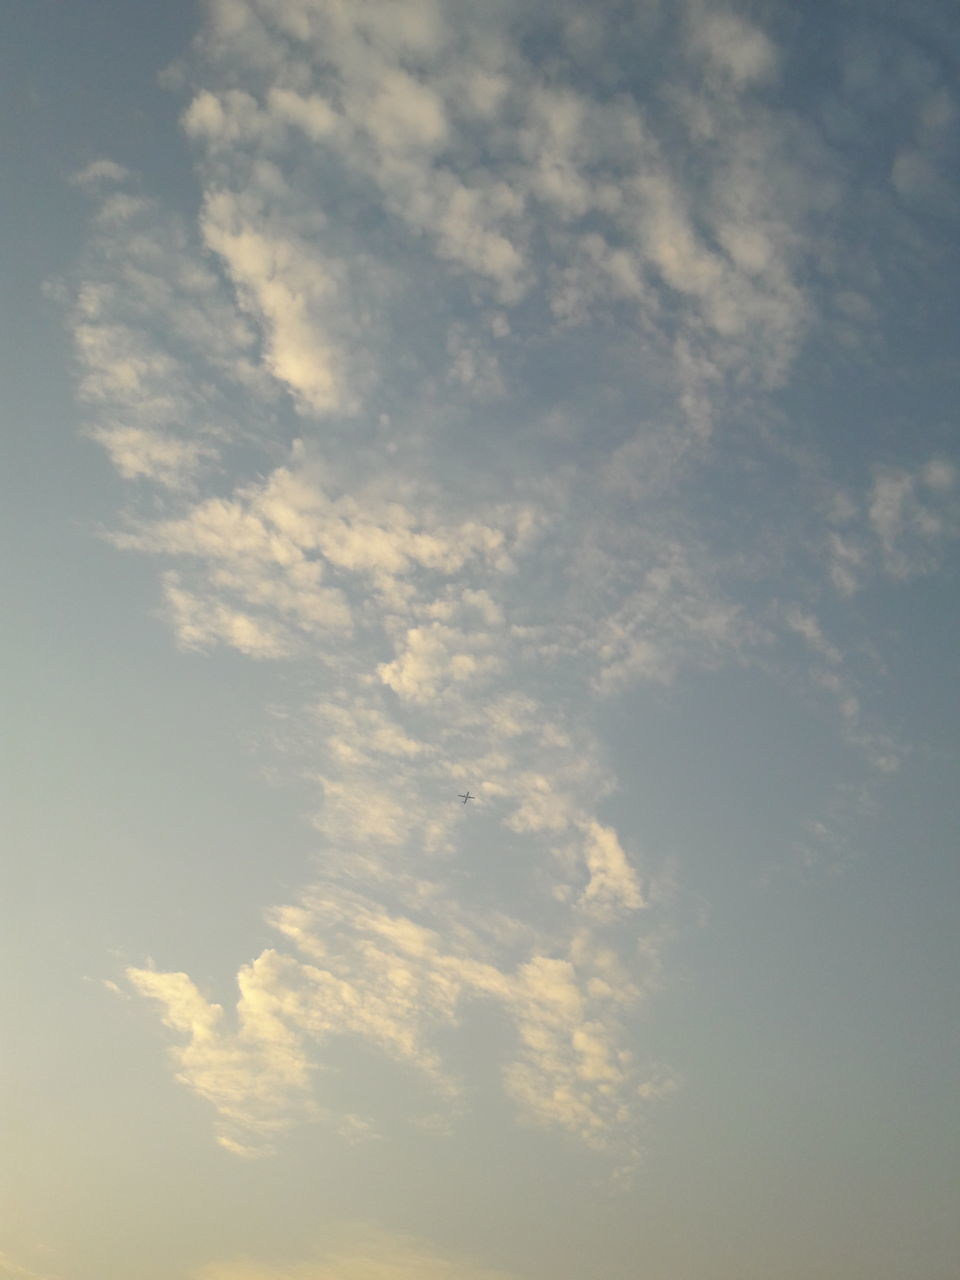 cloud - sky, sky, beauty in nature, nature, low angle view, backgrounds, no people, tranquility, sky only, outdoors, scenics, tranquil scene, full frame, day